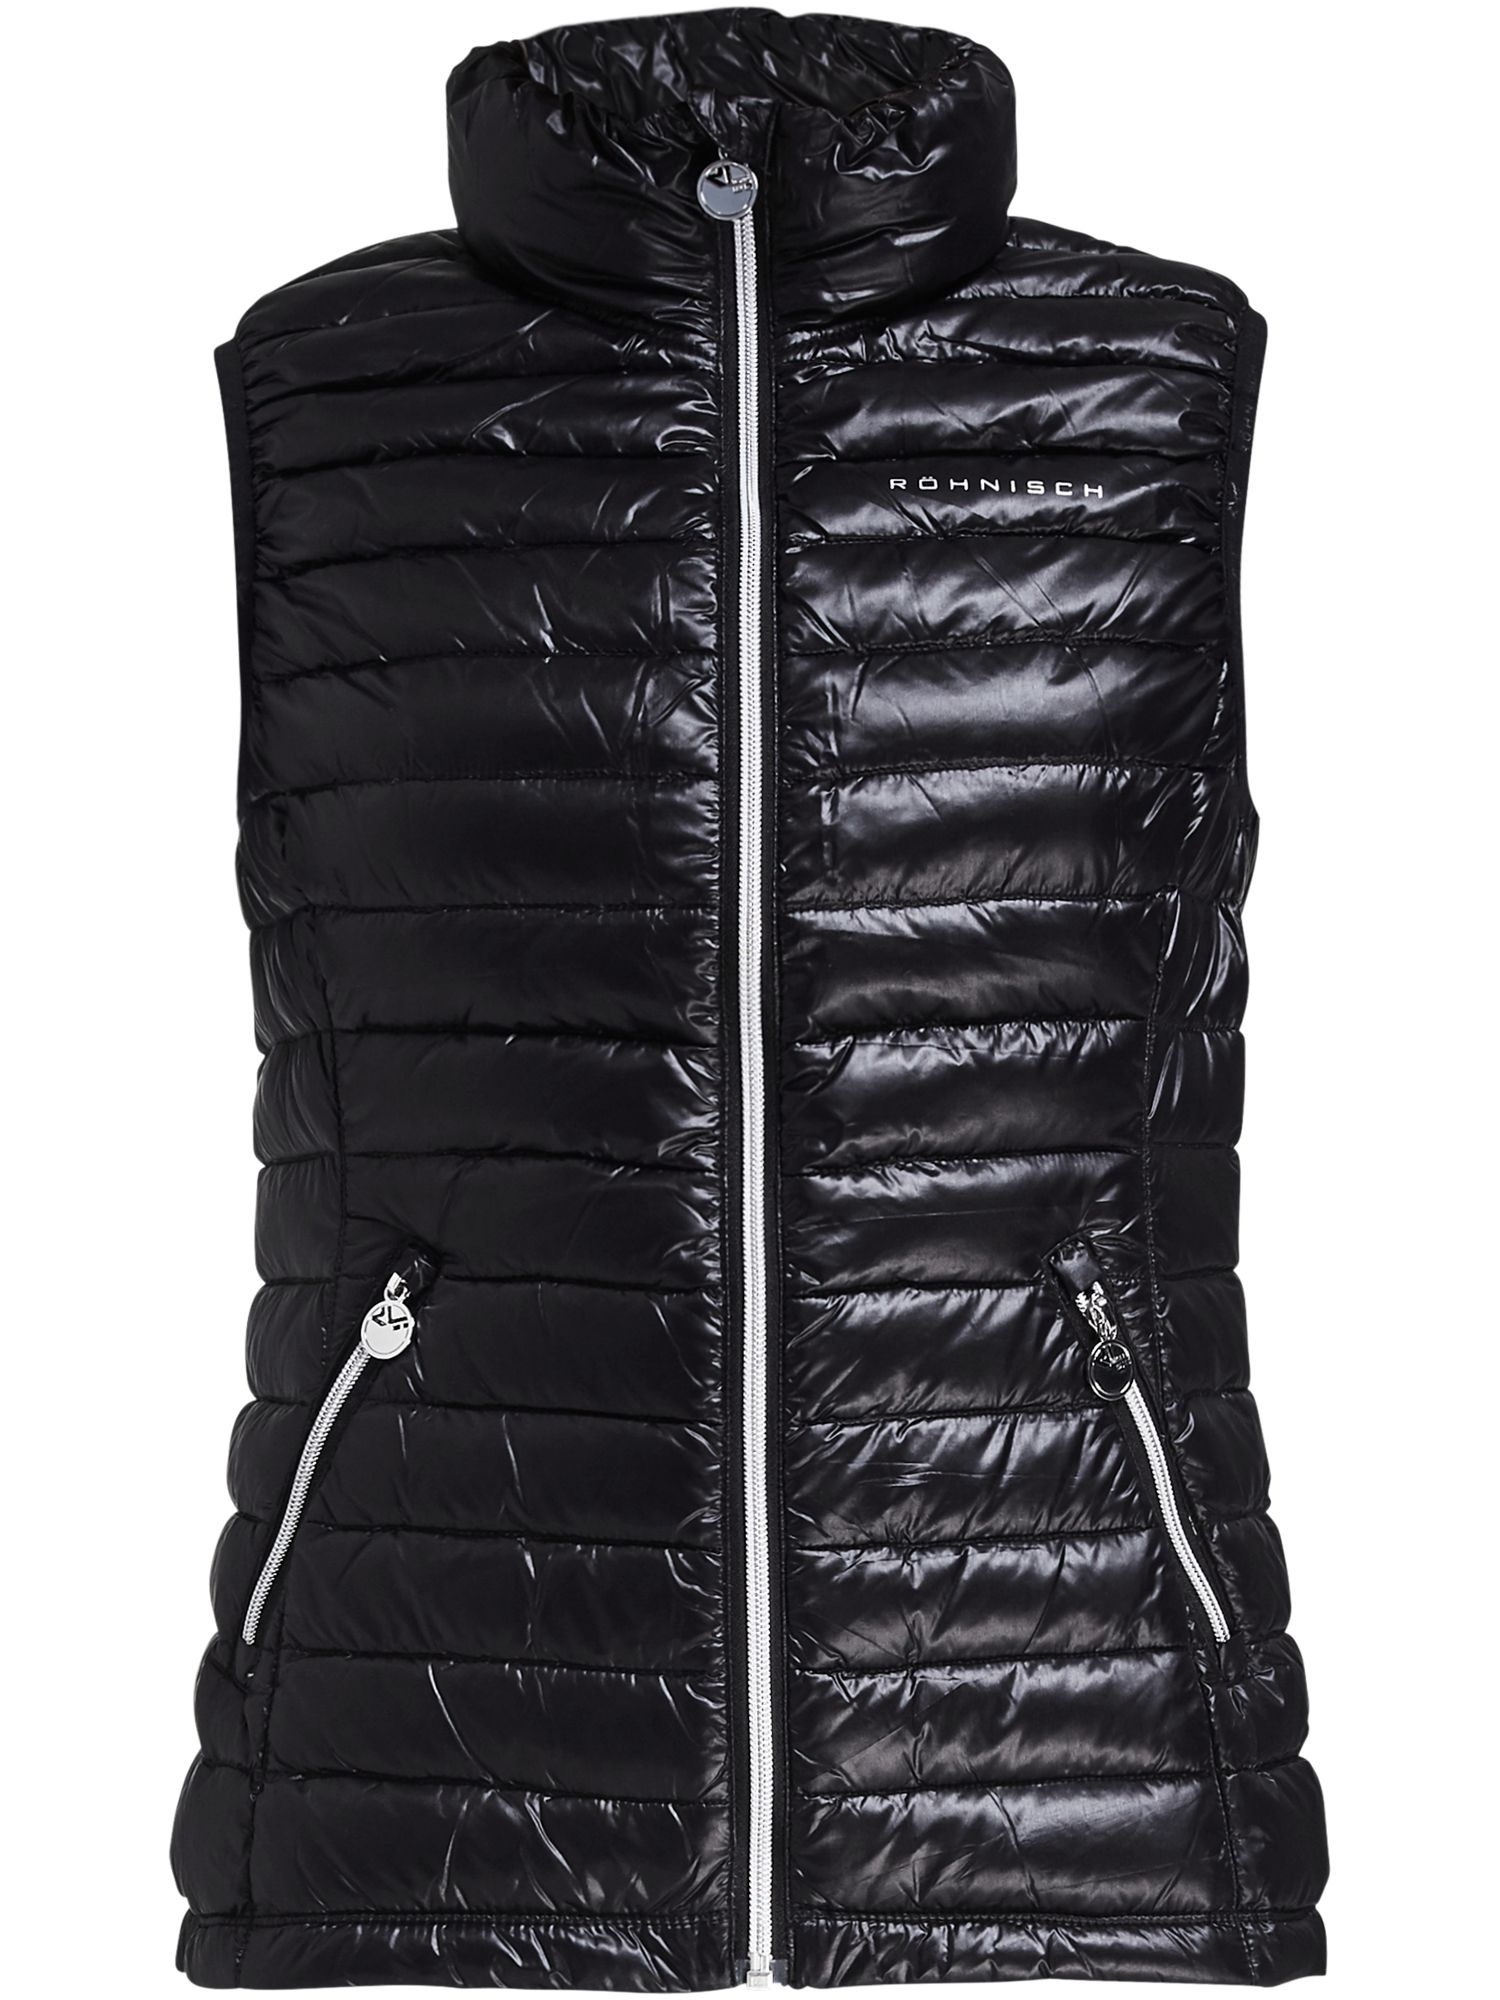 Rohnisch Light Down Gilet, Black